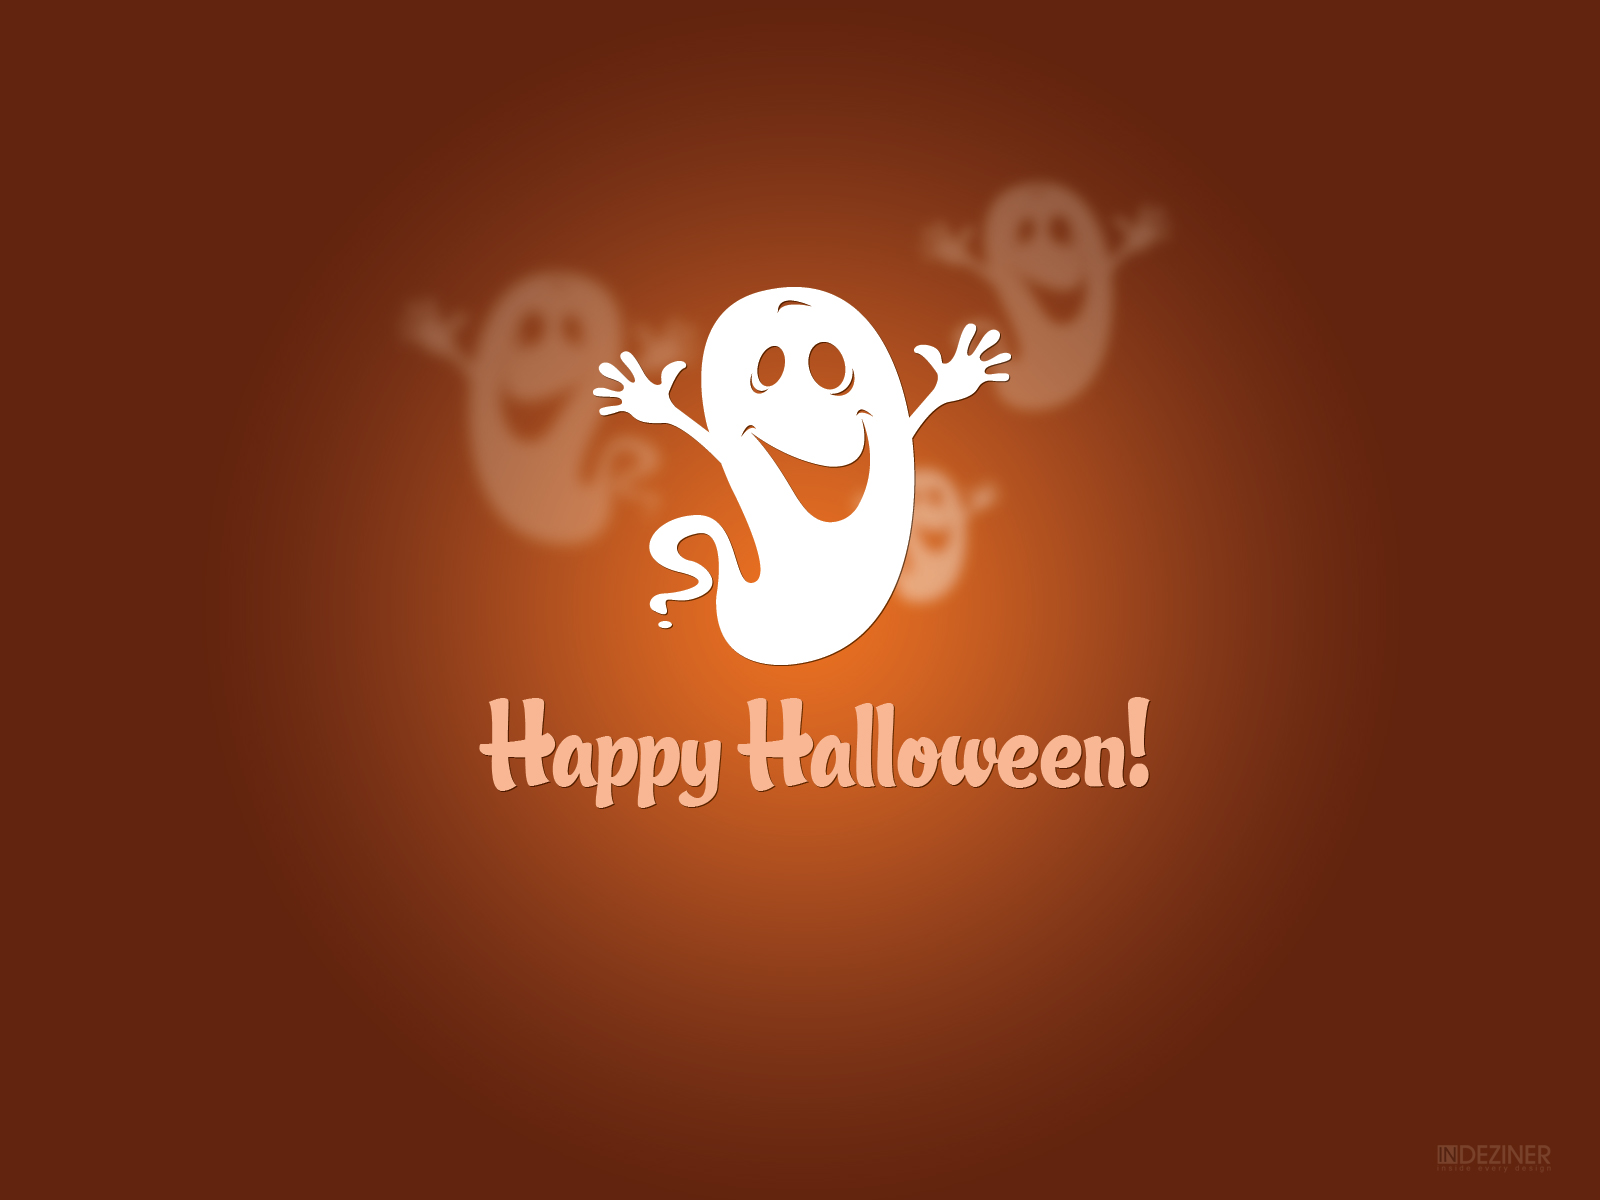 happy halloween wallpapers - photo #4